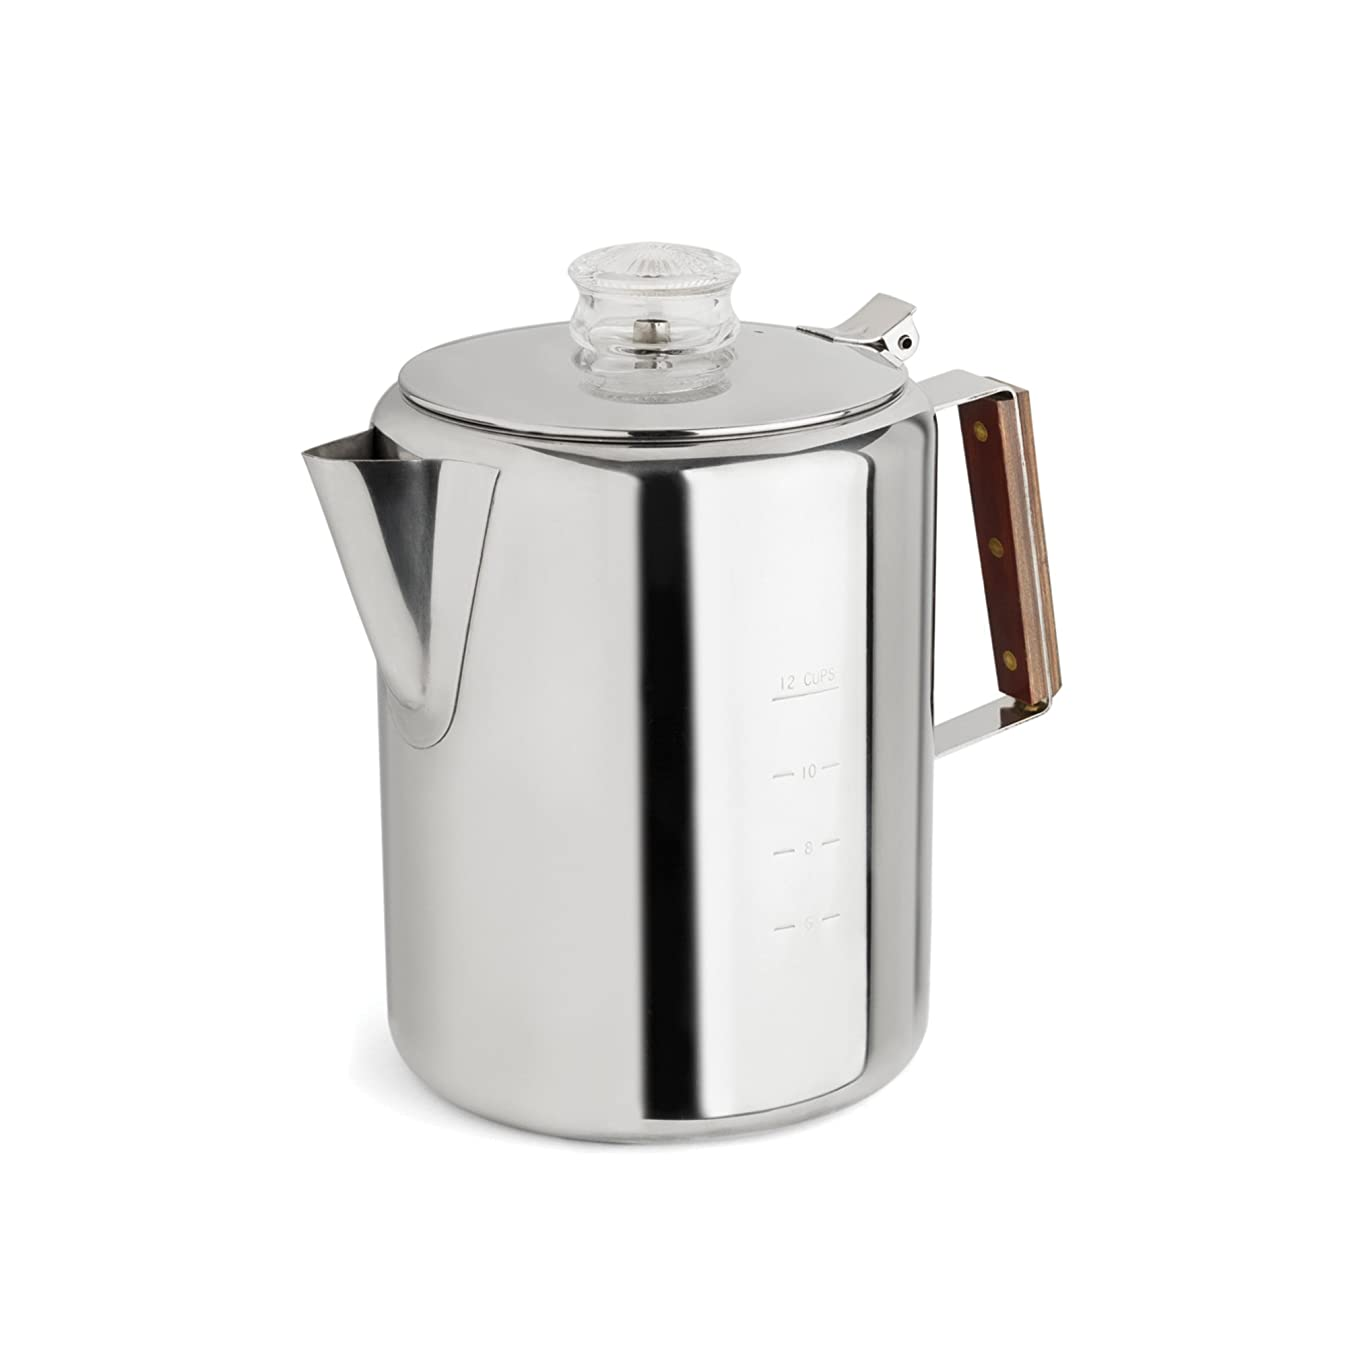 Tops 55705 Rapid Brew Stovetop Coffee Percolator, 12-Cup